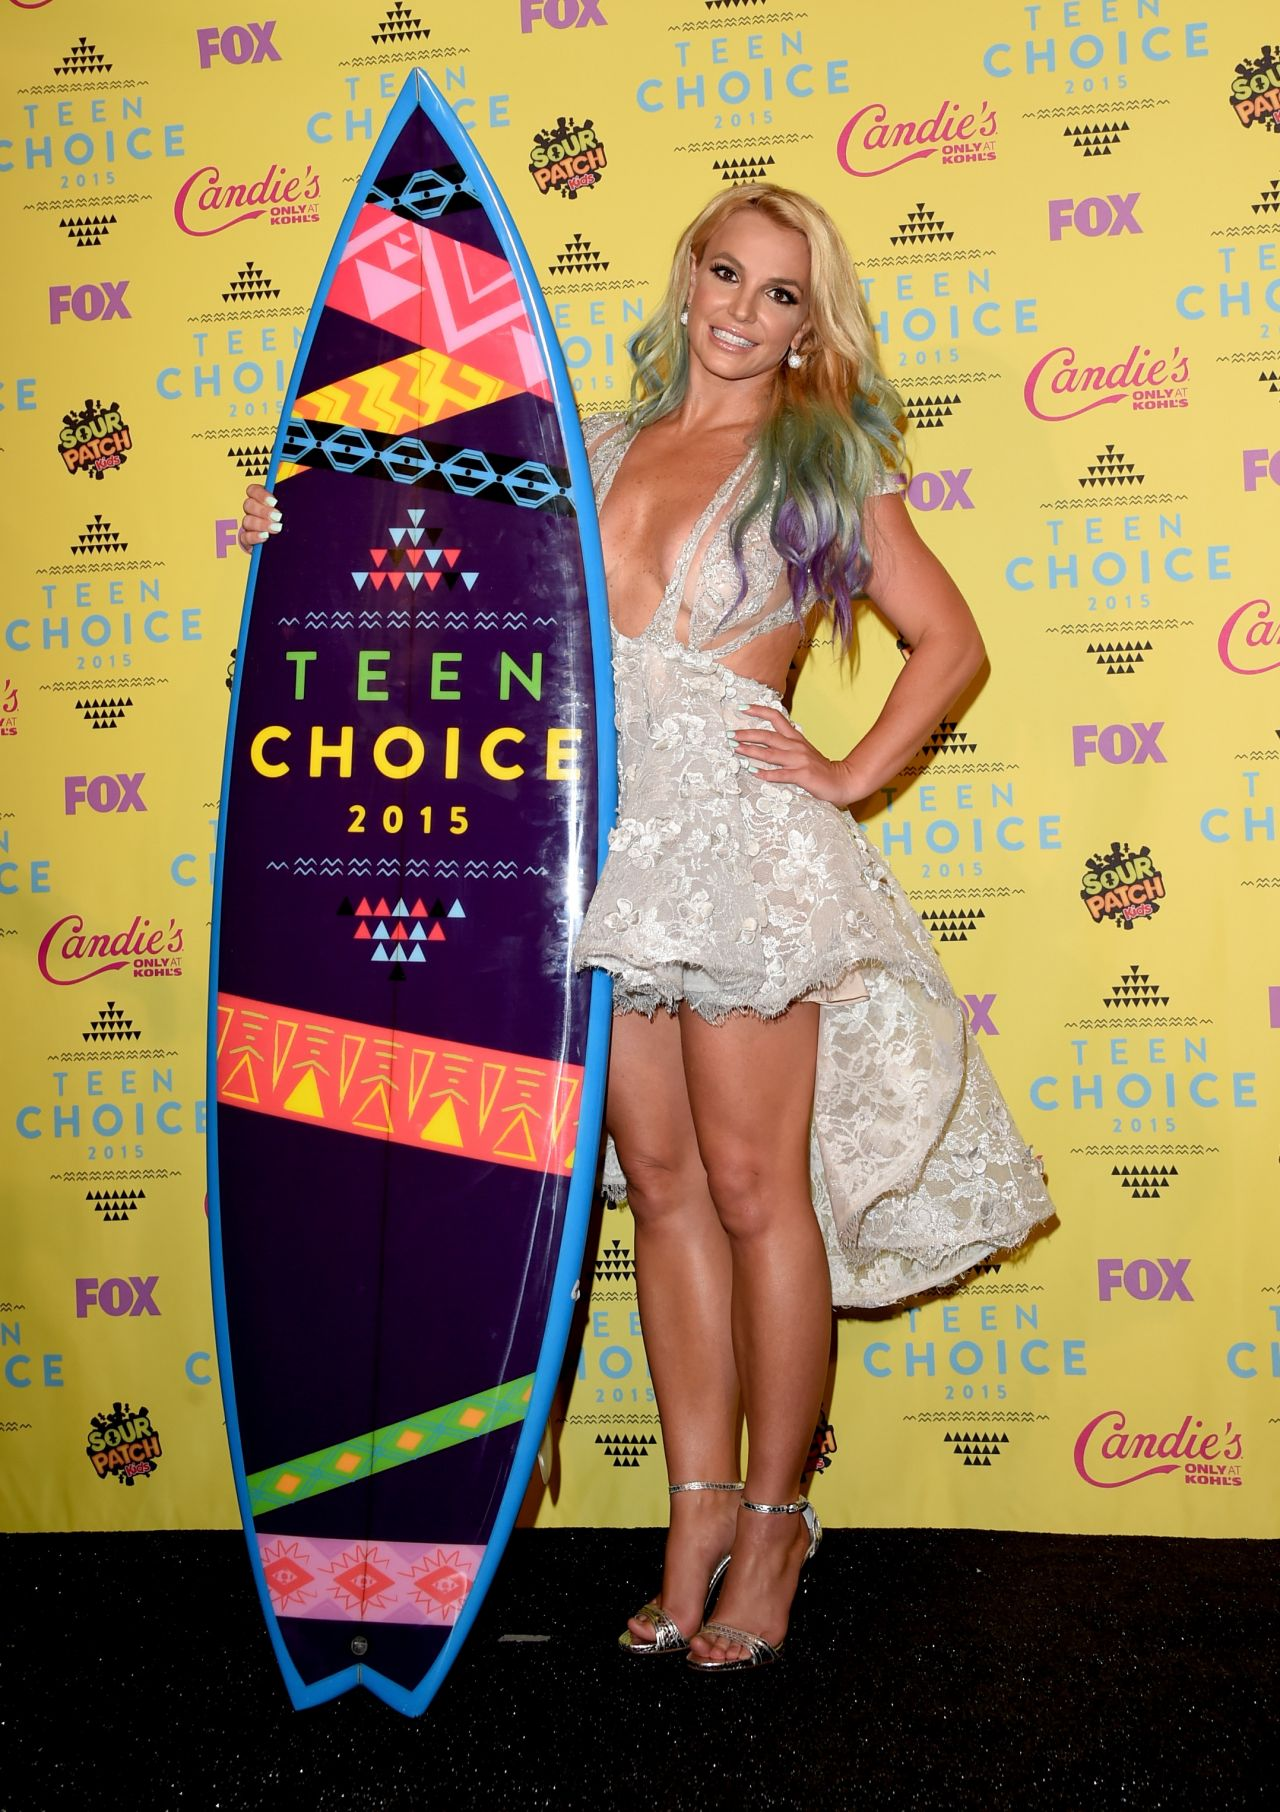 Teen Choice Awards Winners: Full List Hollywood